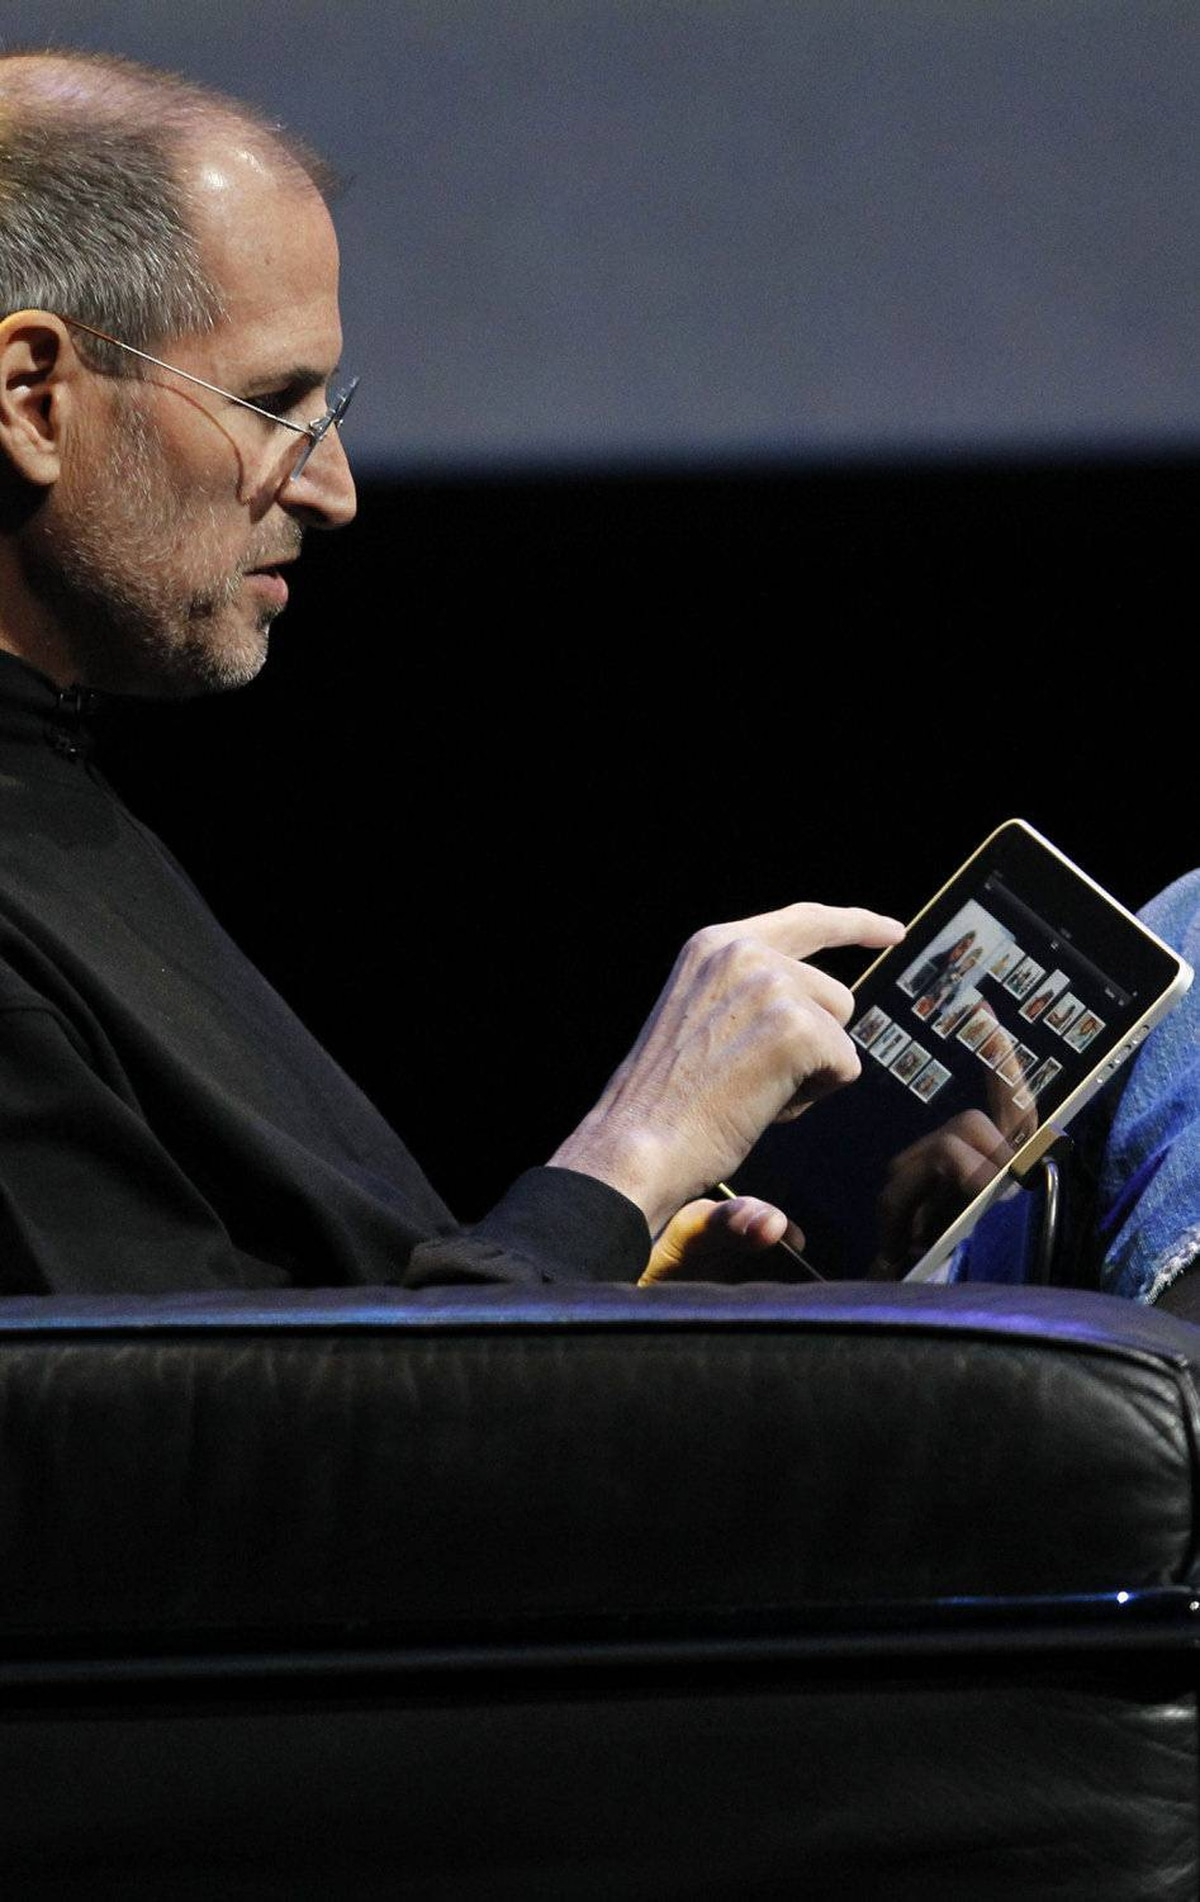 Apple CEO Steve Jobs presents the iPad at the Moscone Center in San Francisco, Wednesday, Jan. 27, 2010.